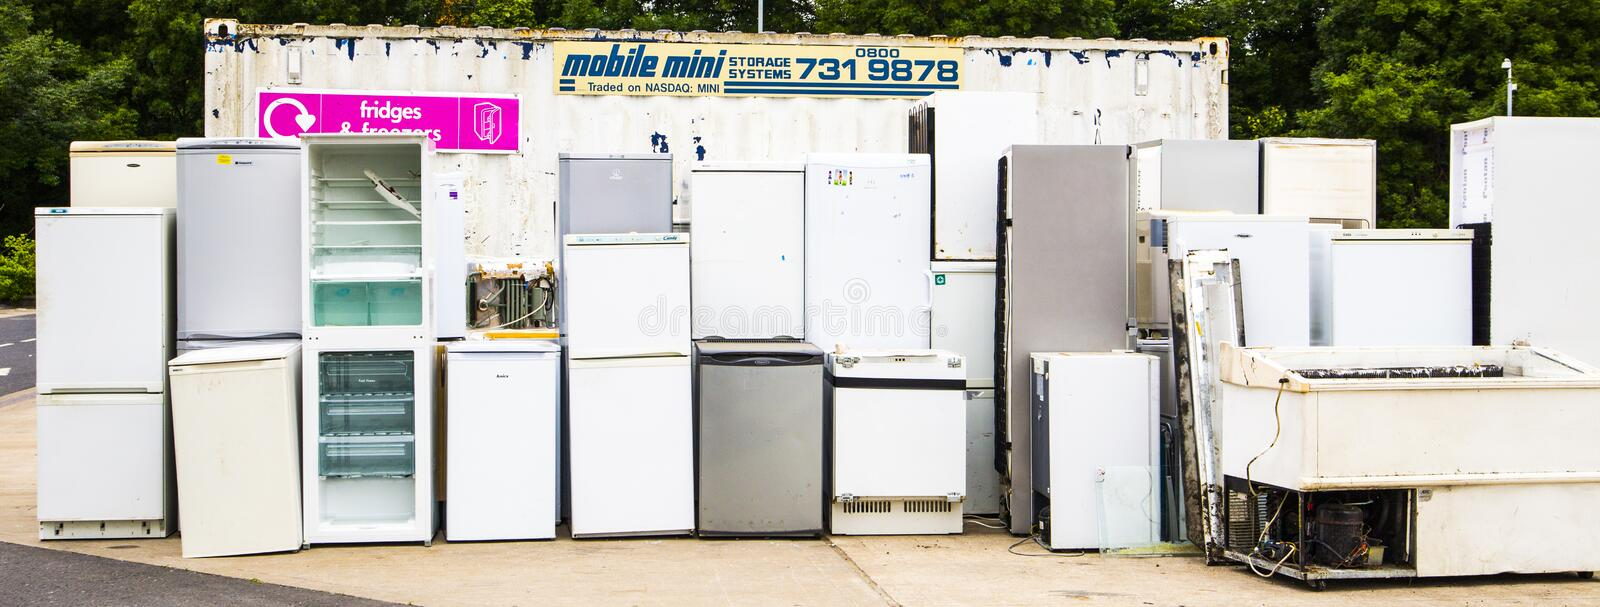 Fridge Recycling Point. A large collection of old fridges and freezers left at a council recycling site. Fridge and Freezer Recycling royalty free stock photo